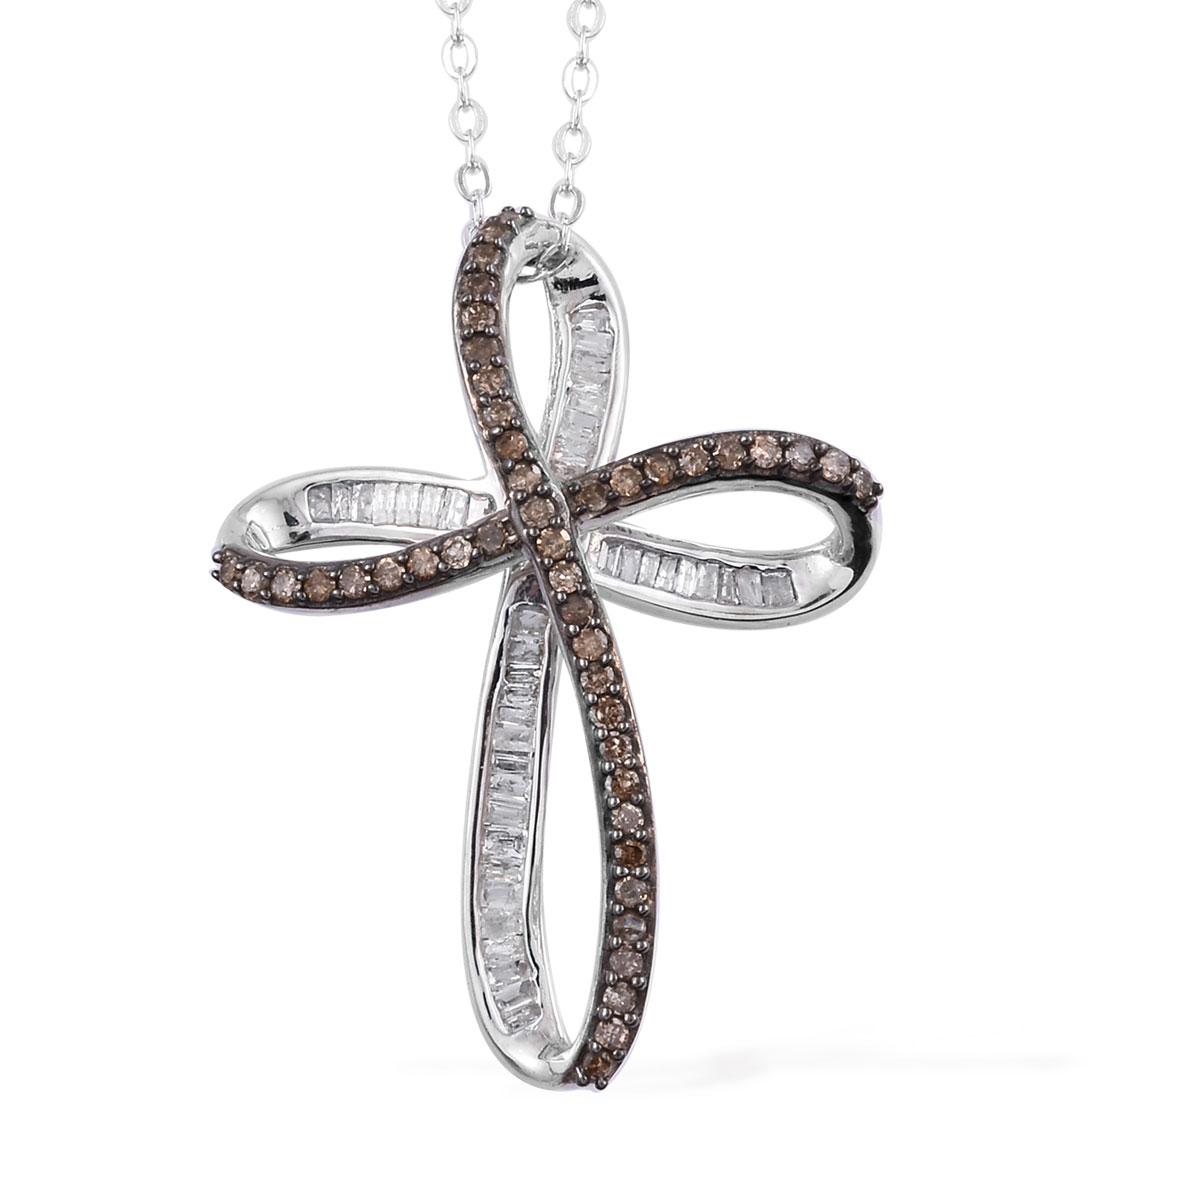 Natural Champagne and White Diamond (0.25 ct) Cross Pendant Necklace (20 in) in Rhodium & Platinum Over Sterling Silver 0.50 ctw